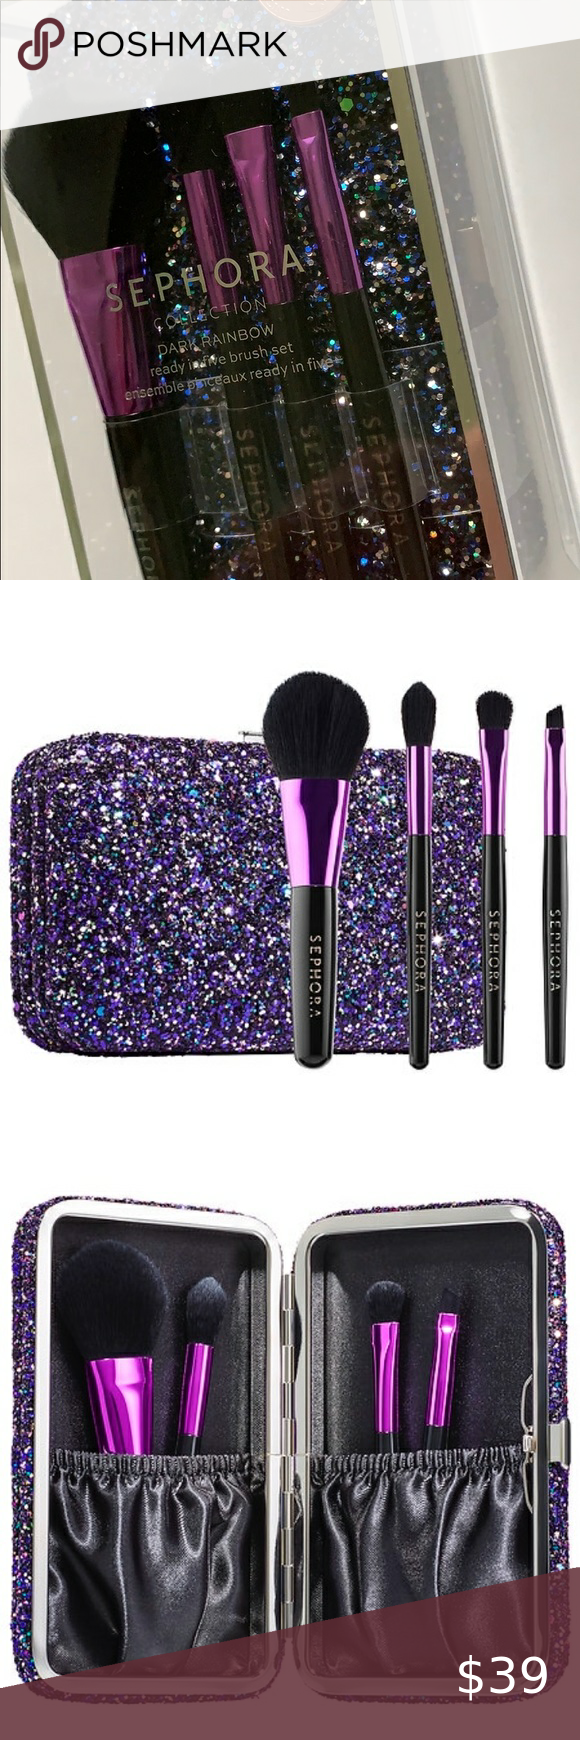 Sephora Glitter Makeup Brush Set Travel Case in 2020